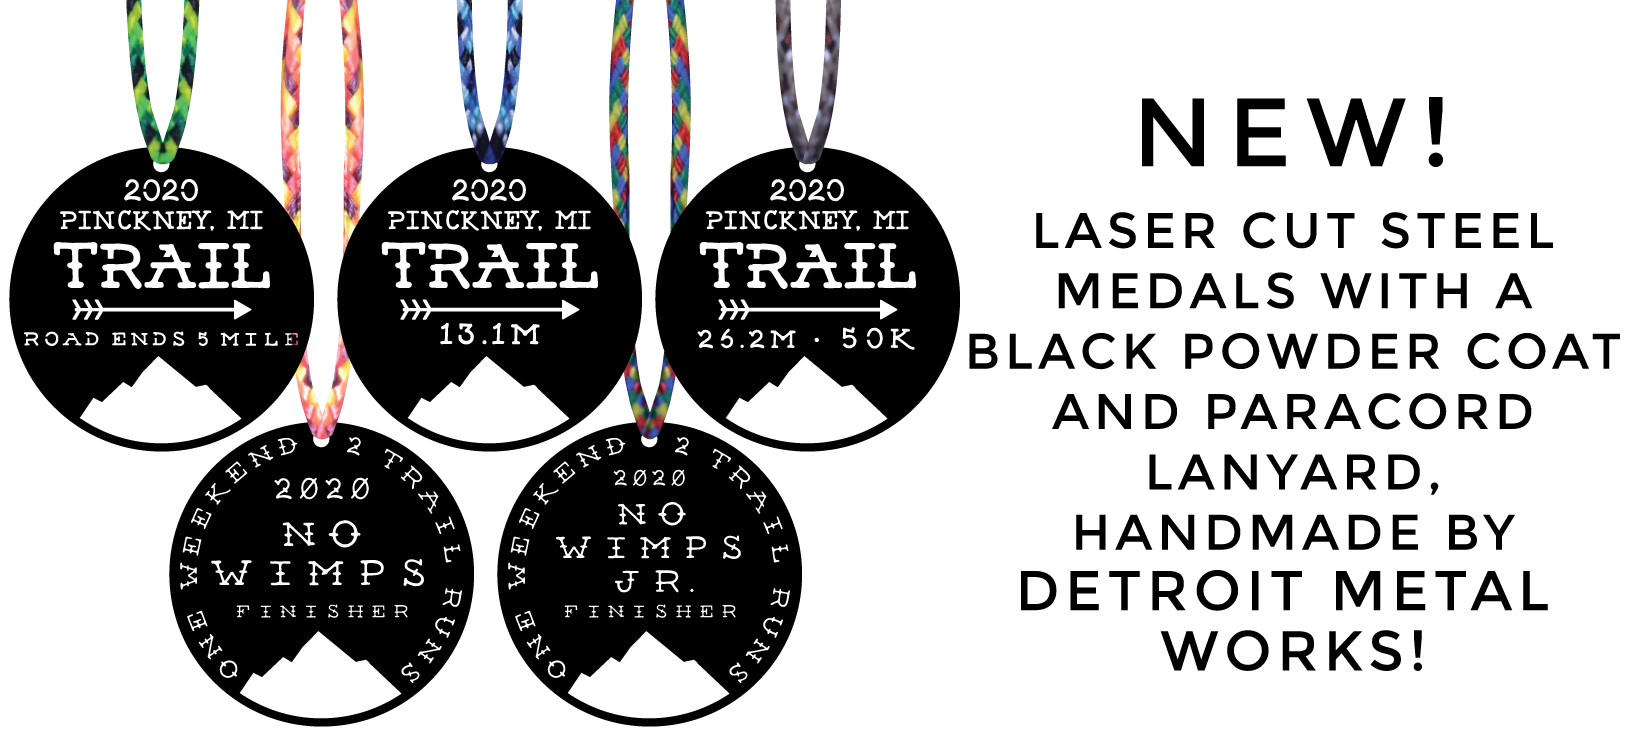 MEDALS FOR WEB trail 2020